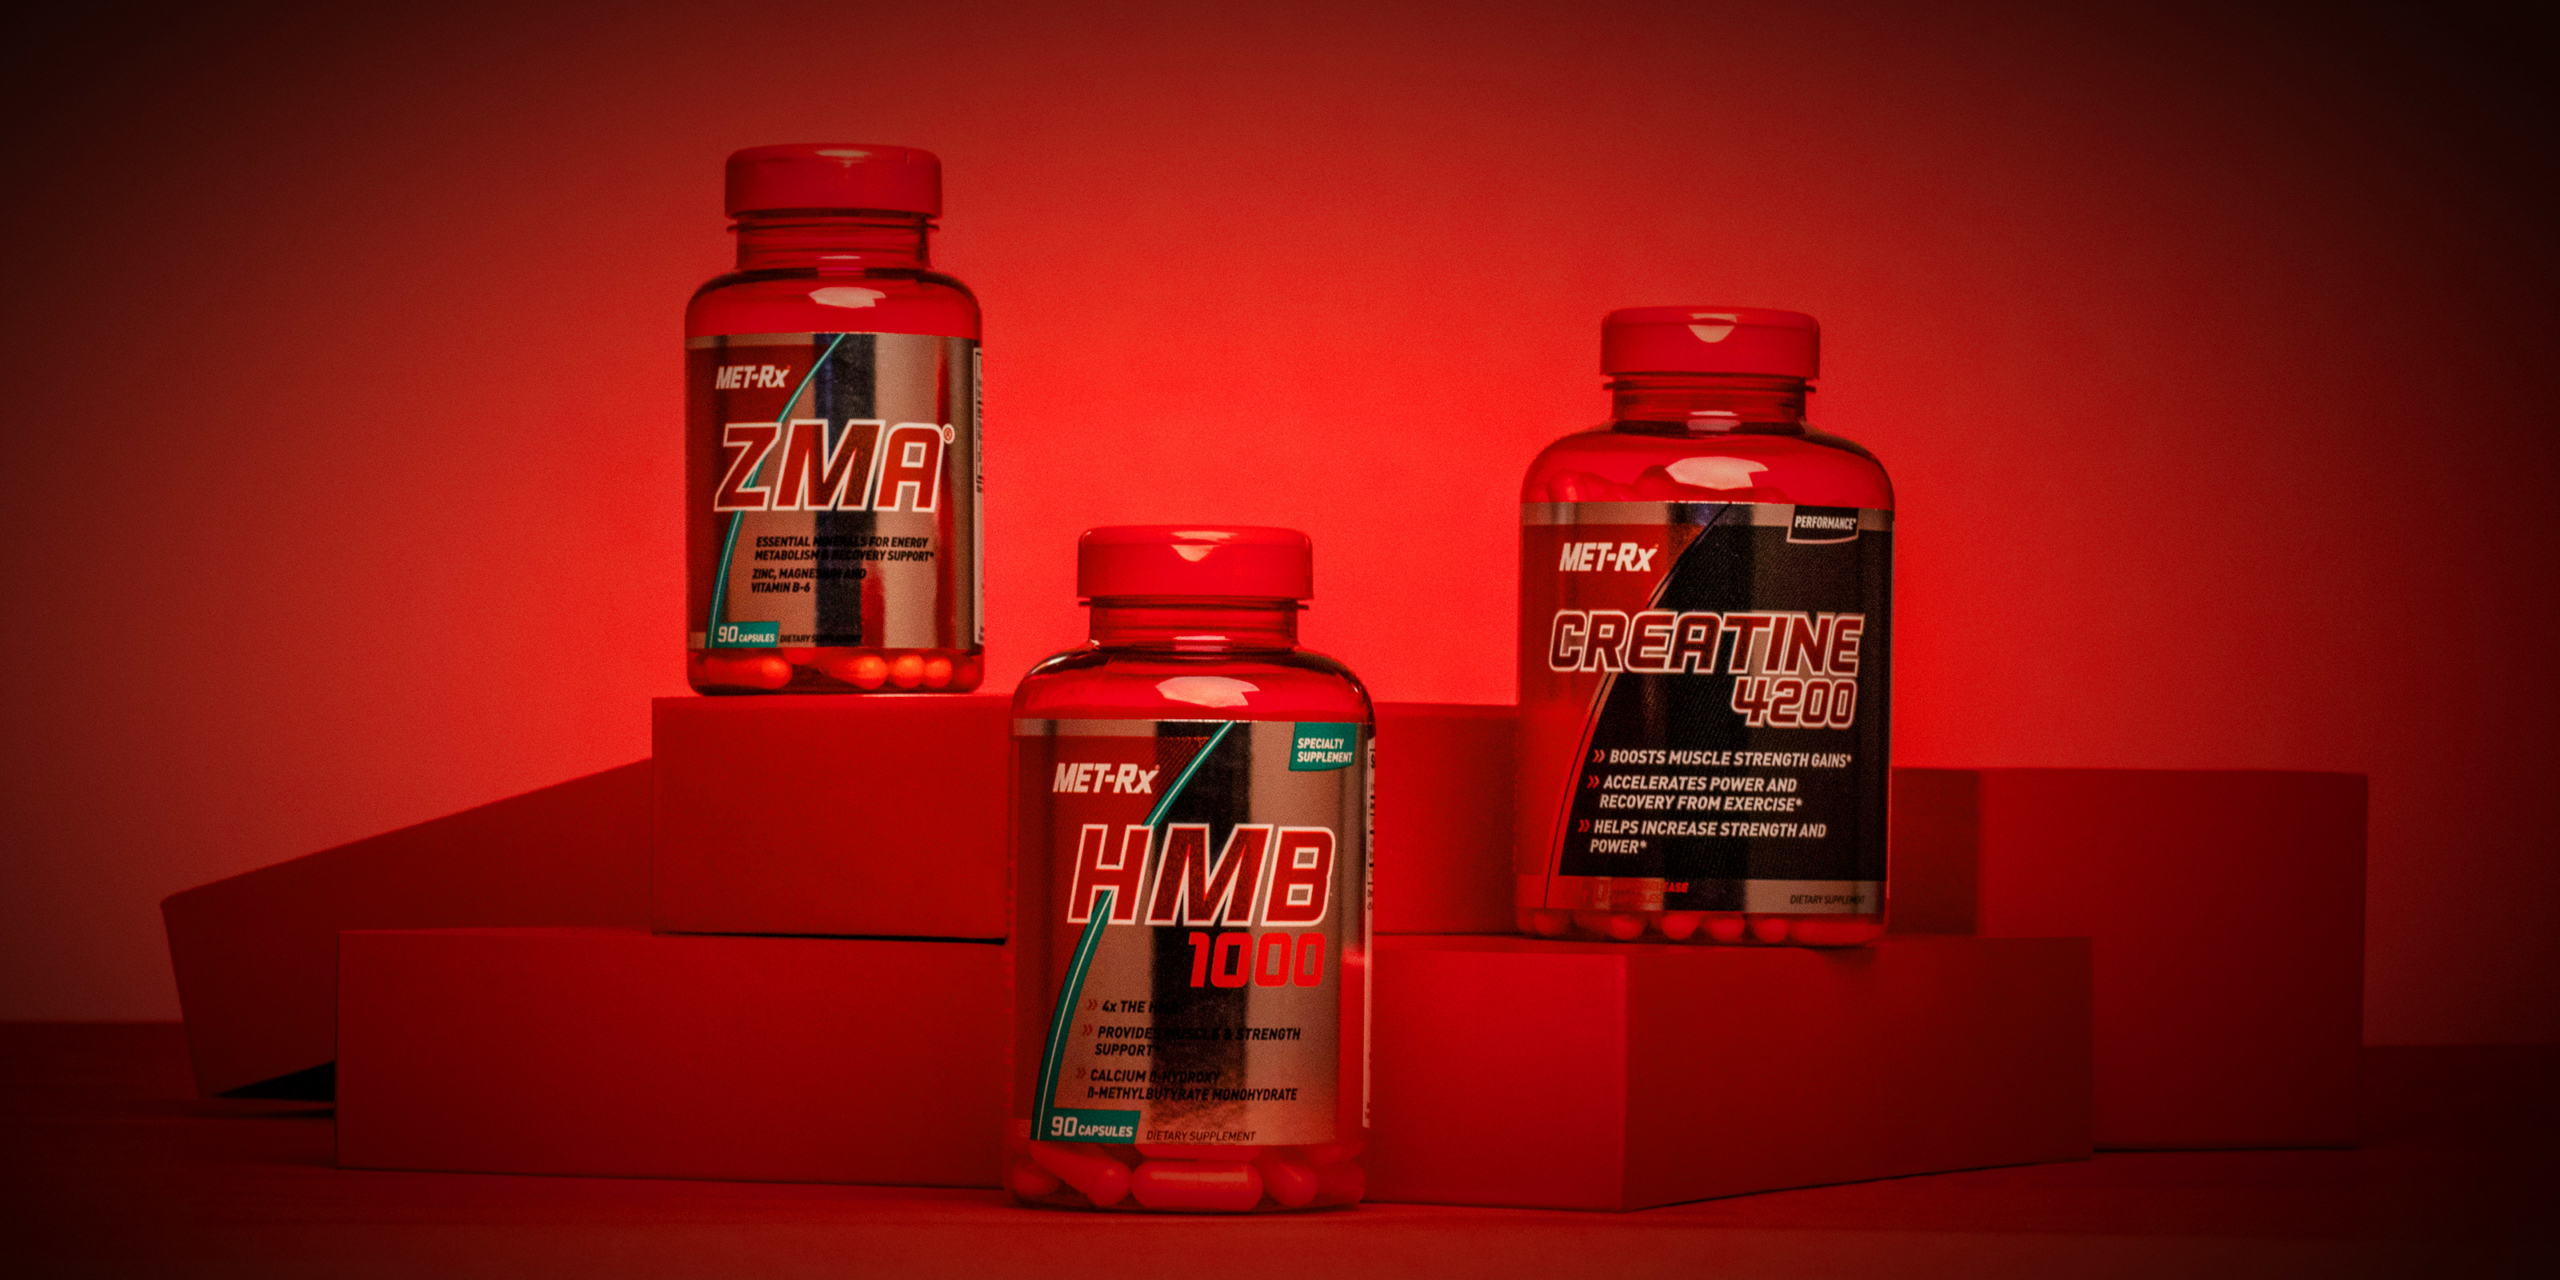 Getting Started with Supplements: Creatine 4200, ZMA and HMB